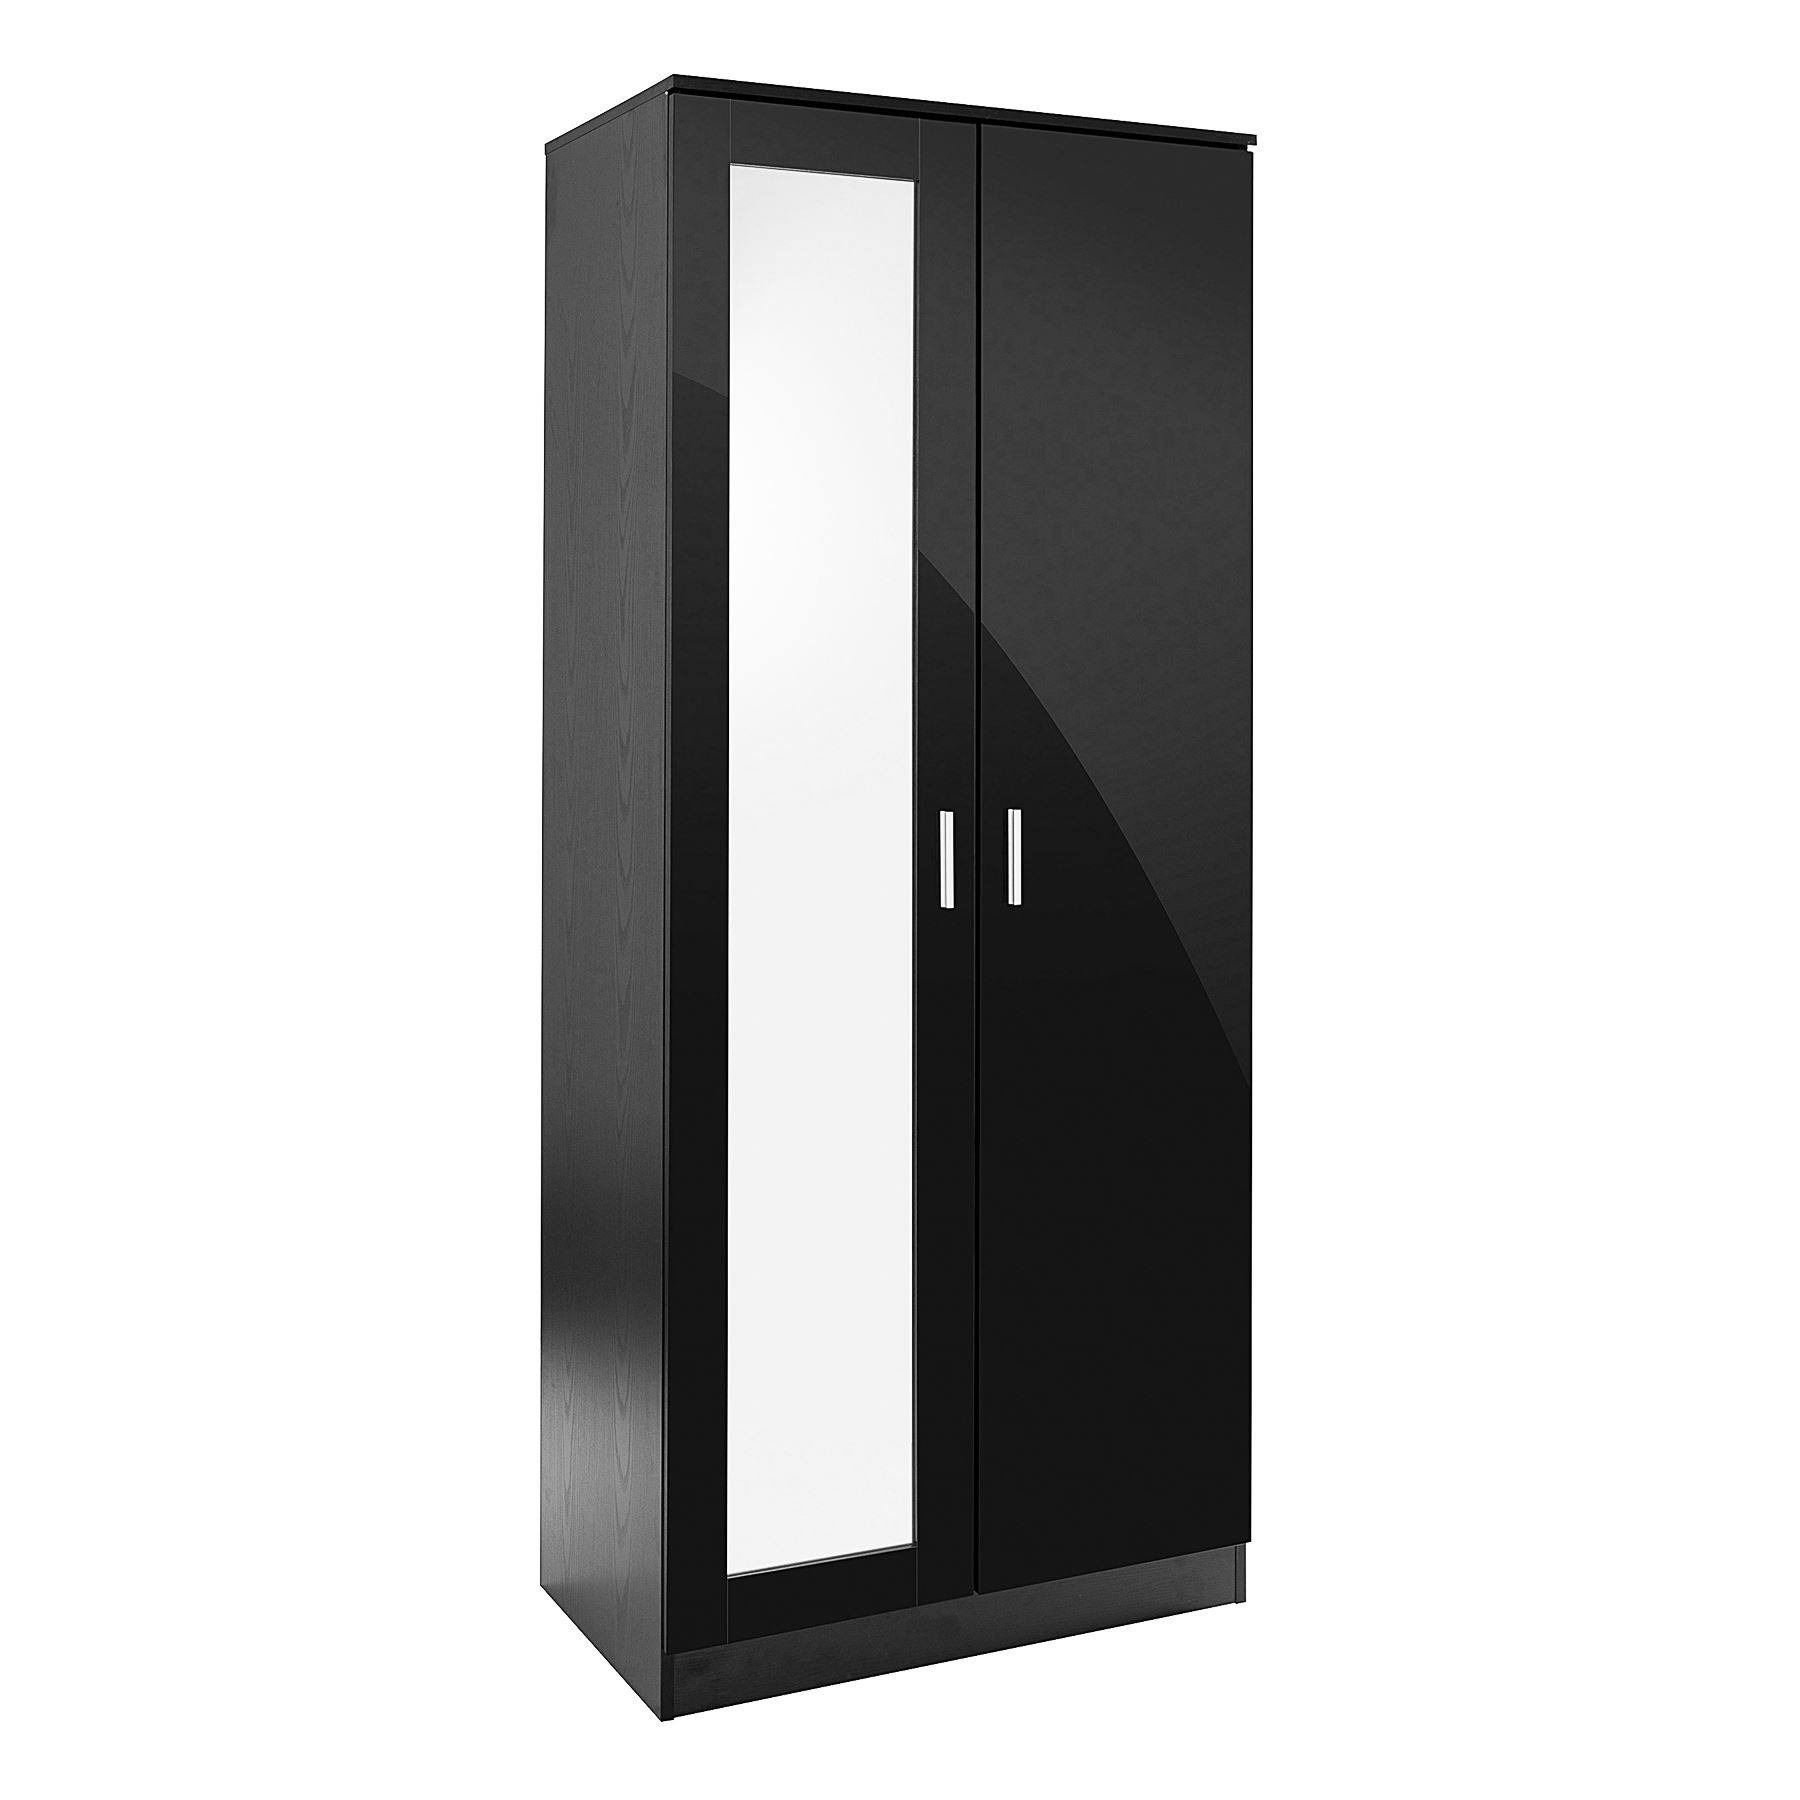 Bedroom Furniture 3 Piece Set Black Gloss Wardrobe Drawer Bedside Throughout Newest Black Gloss 3 Door Wardrobes (View 4 of 15)